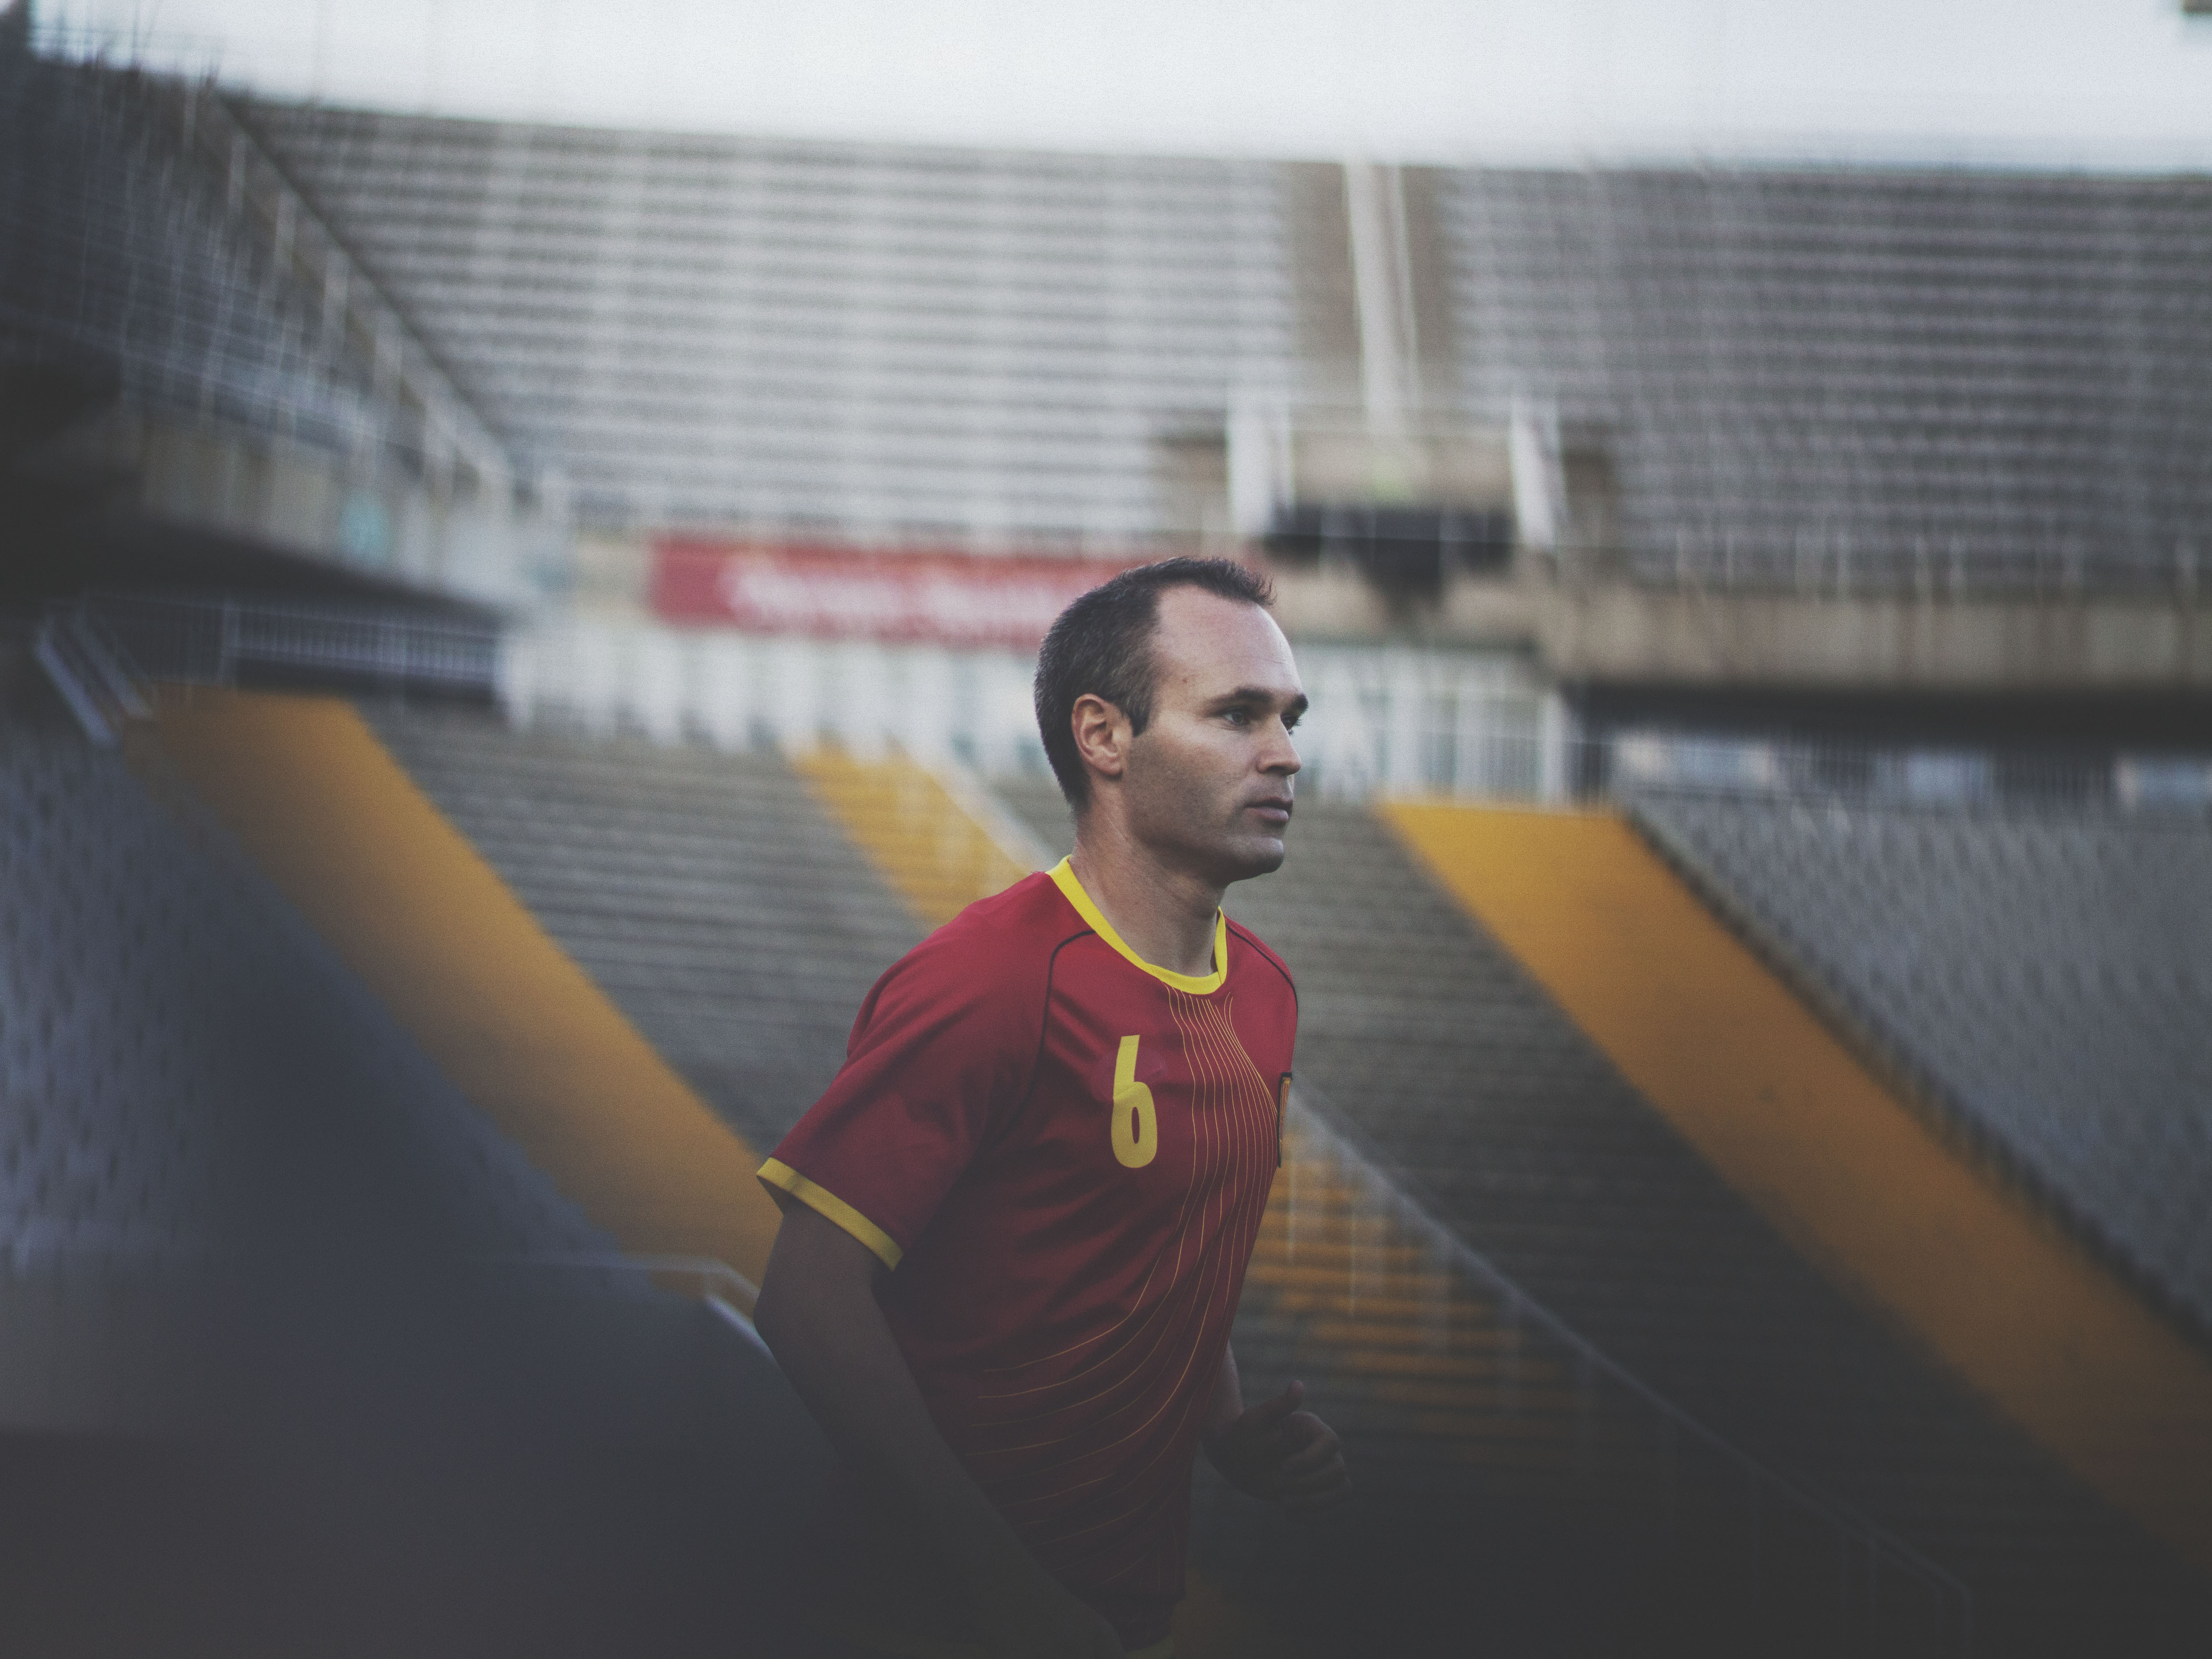 Andres Iniesta who memorably scored Spain's winning goal in the 2010 FIFA World Cup(TM) Final, will be featured in the new Powerade campaign for the 2014 FIFA World Cup(TM).